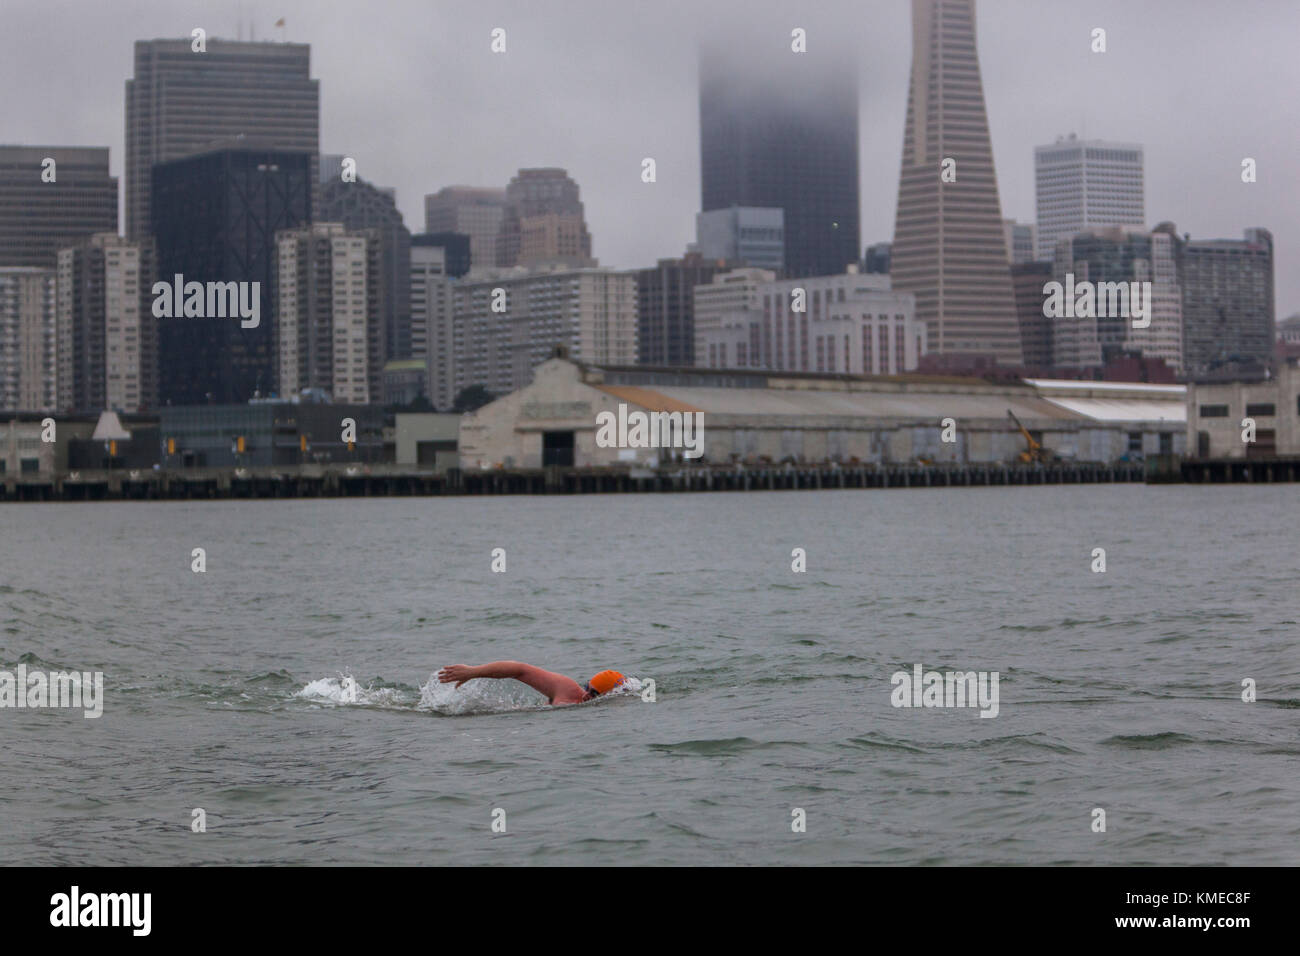 Member of Dolphin Club swimming in Bay Bridge, San Francisco, California, USA - Stock Image